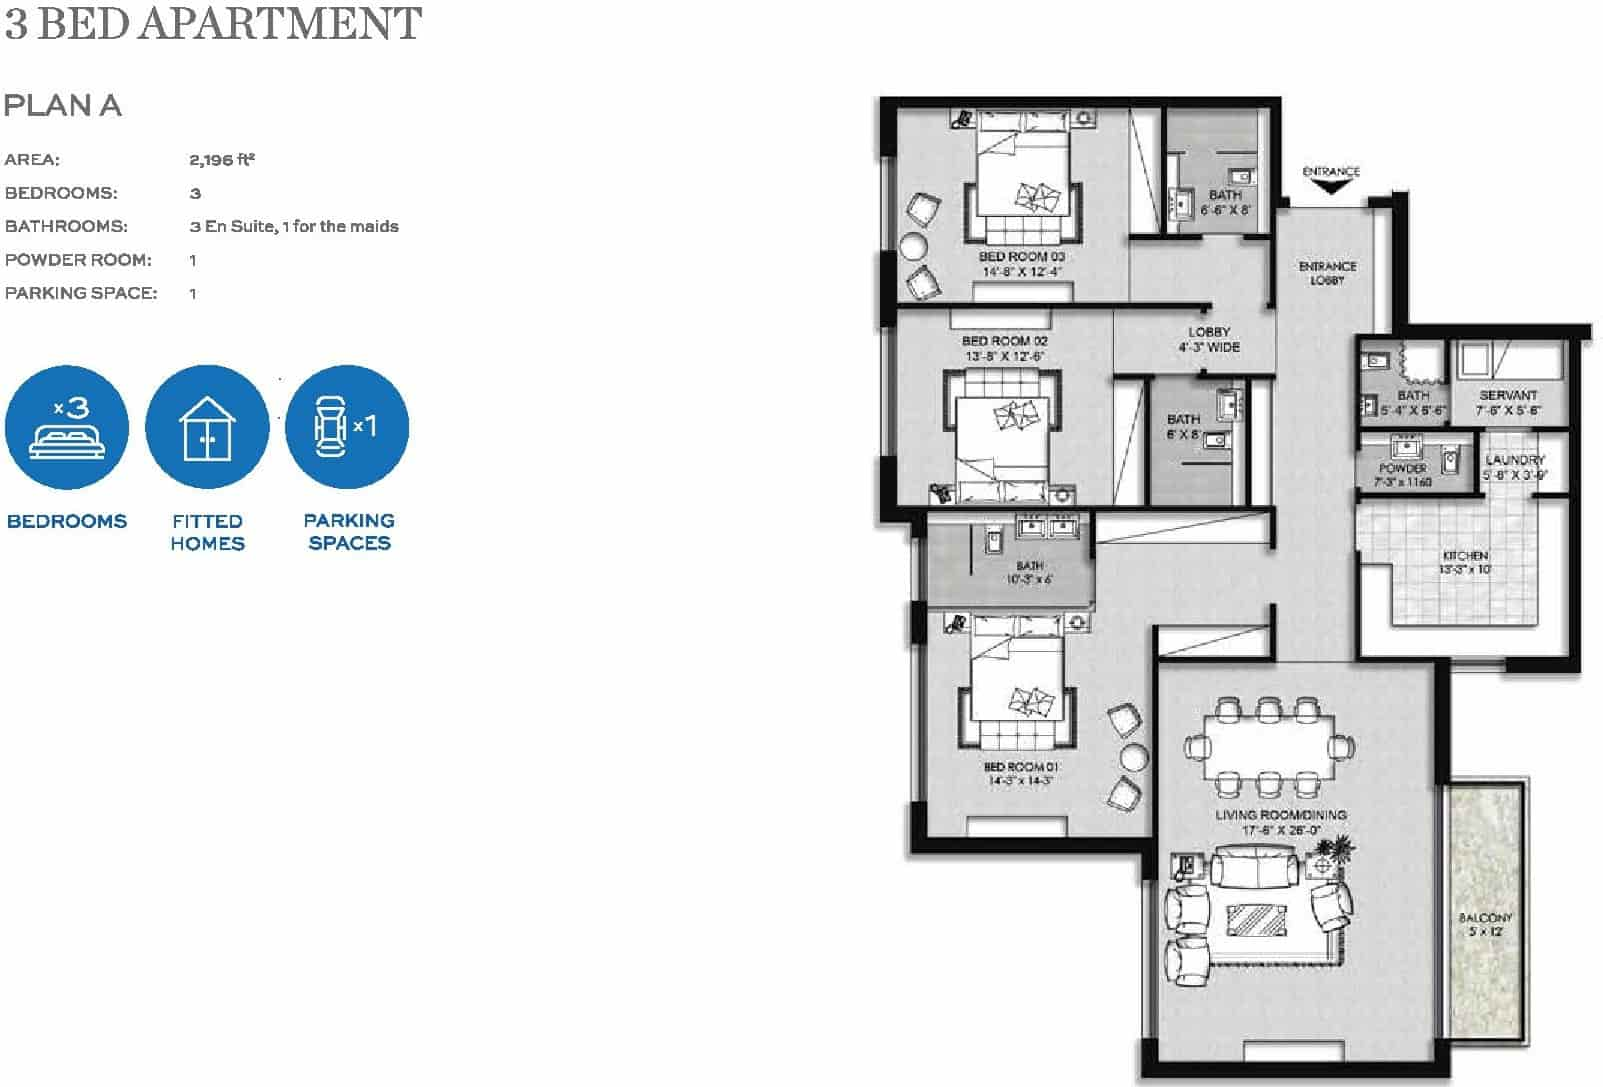 The Heights Eighteen 3 Bed Apartment Layout Plan A